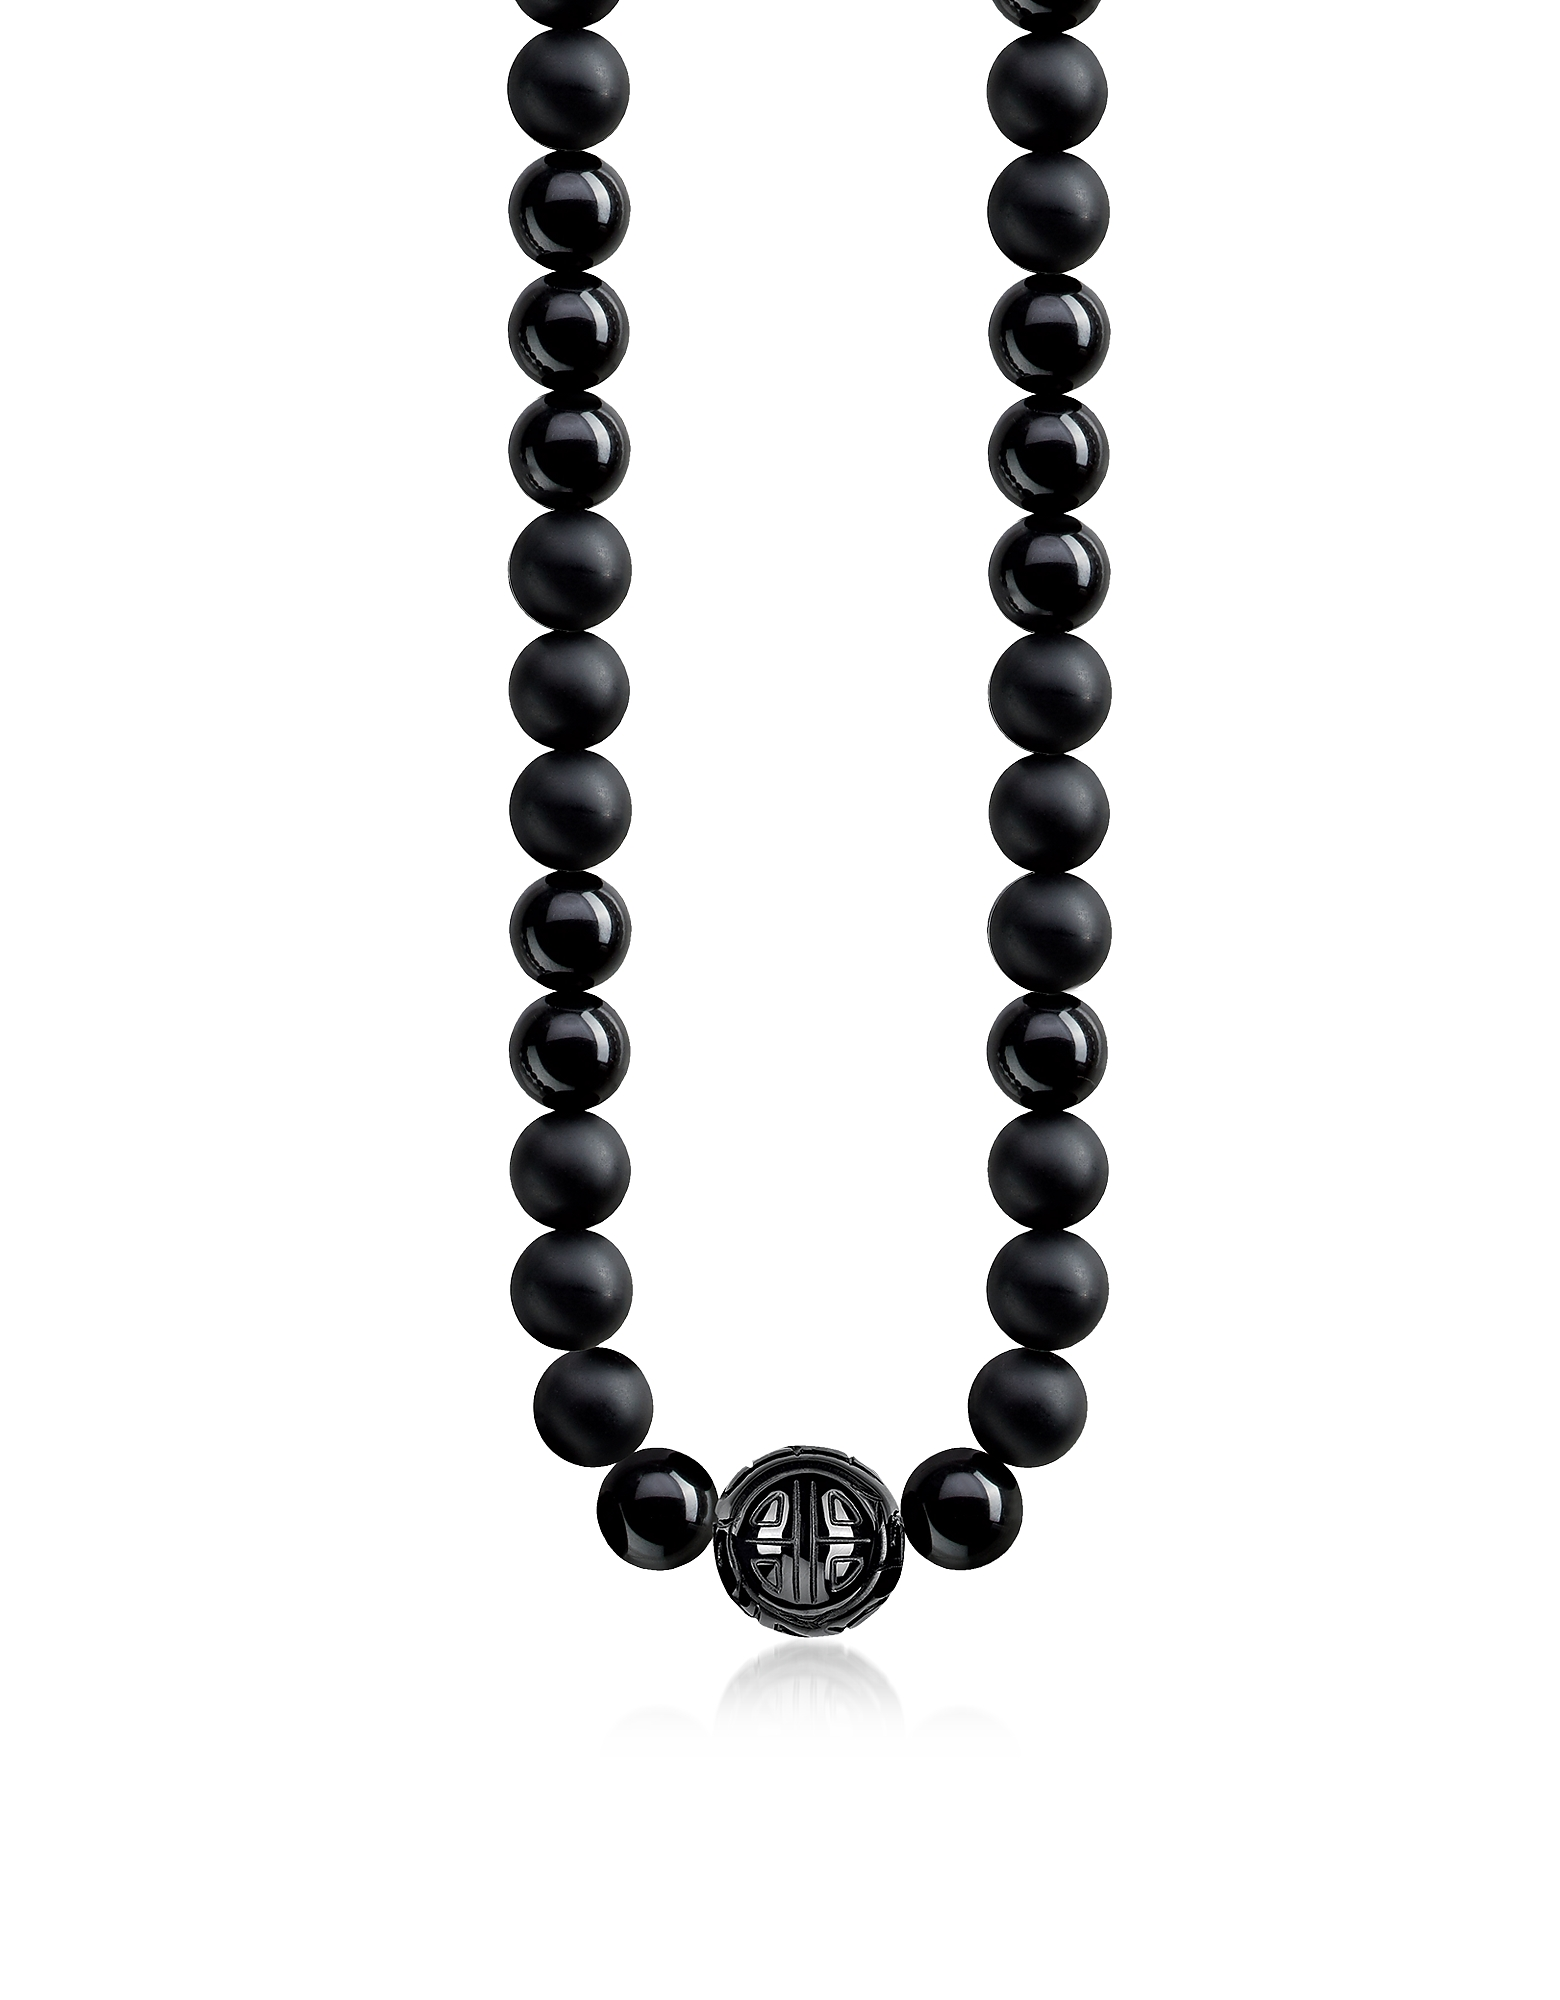 Power Blackened Sterling Silver Men's Necklace w/Obsidian Matt and Polished Beads